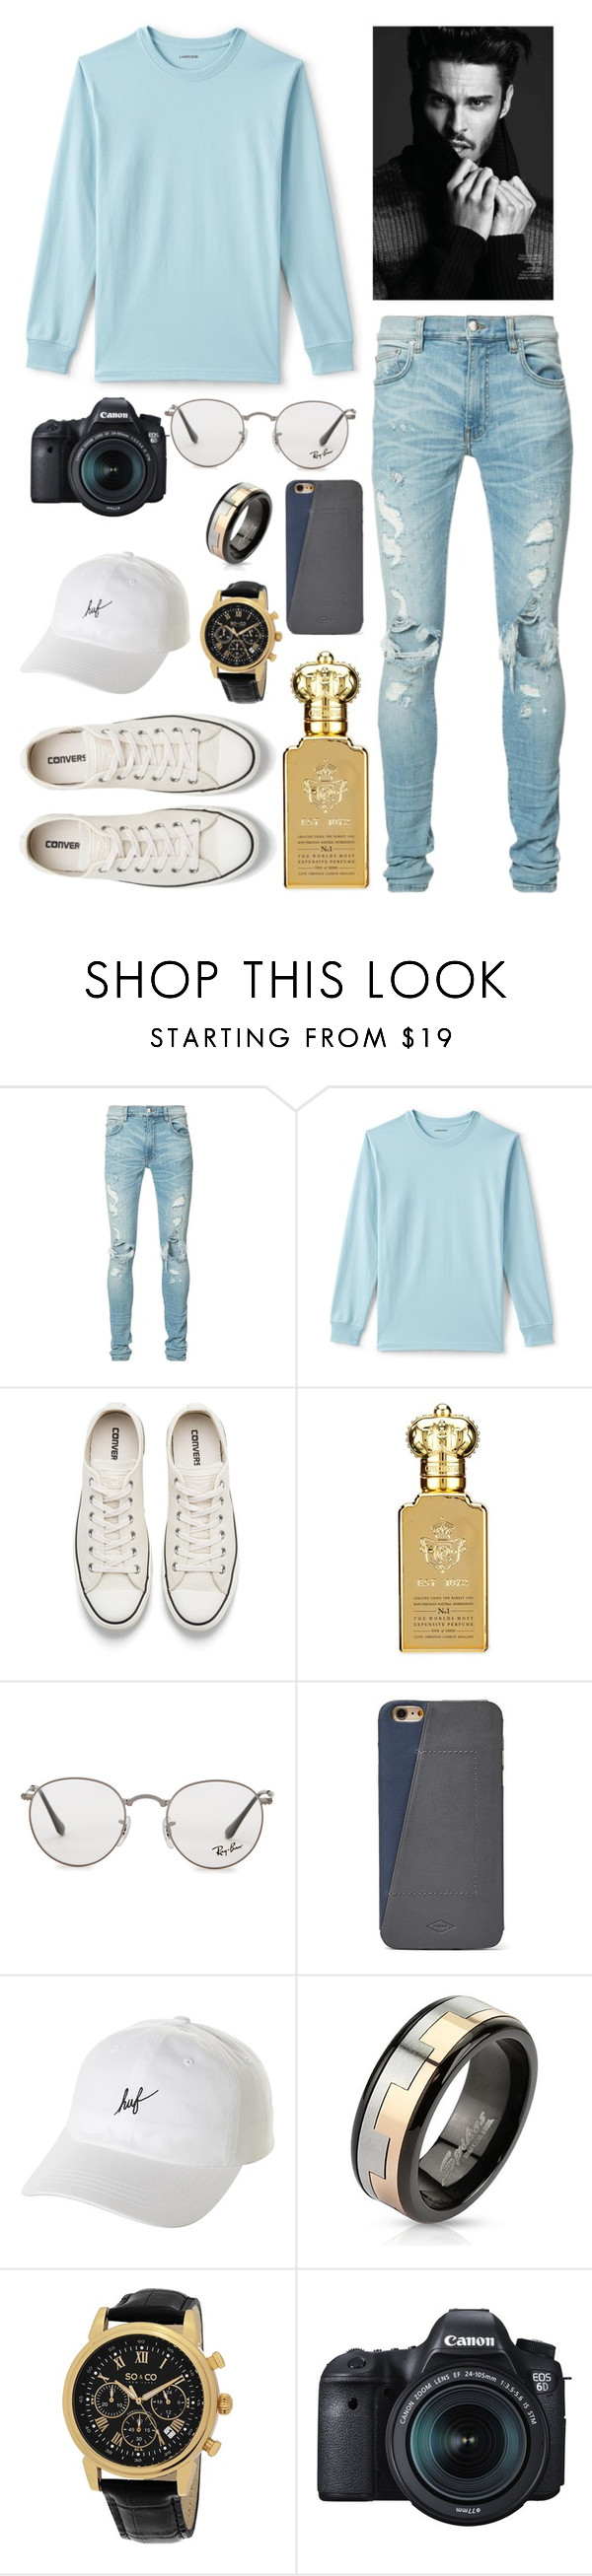 """""""~Jaden's First Day Outfit For My Book~"""" by logibear1534 on Polyvore featuring AMIRI, Lands' End, Converse, Clive Christian, Ray-Ban, FOSSIL, HUF, West Coast Jewelry, SO & CO and Eos"""